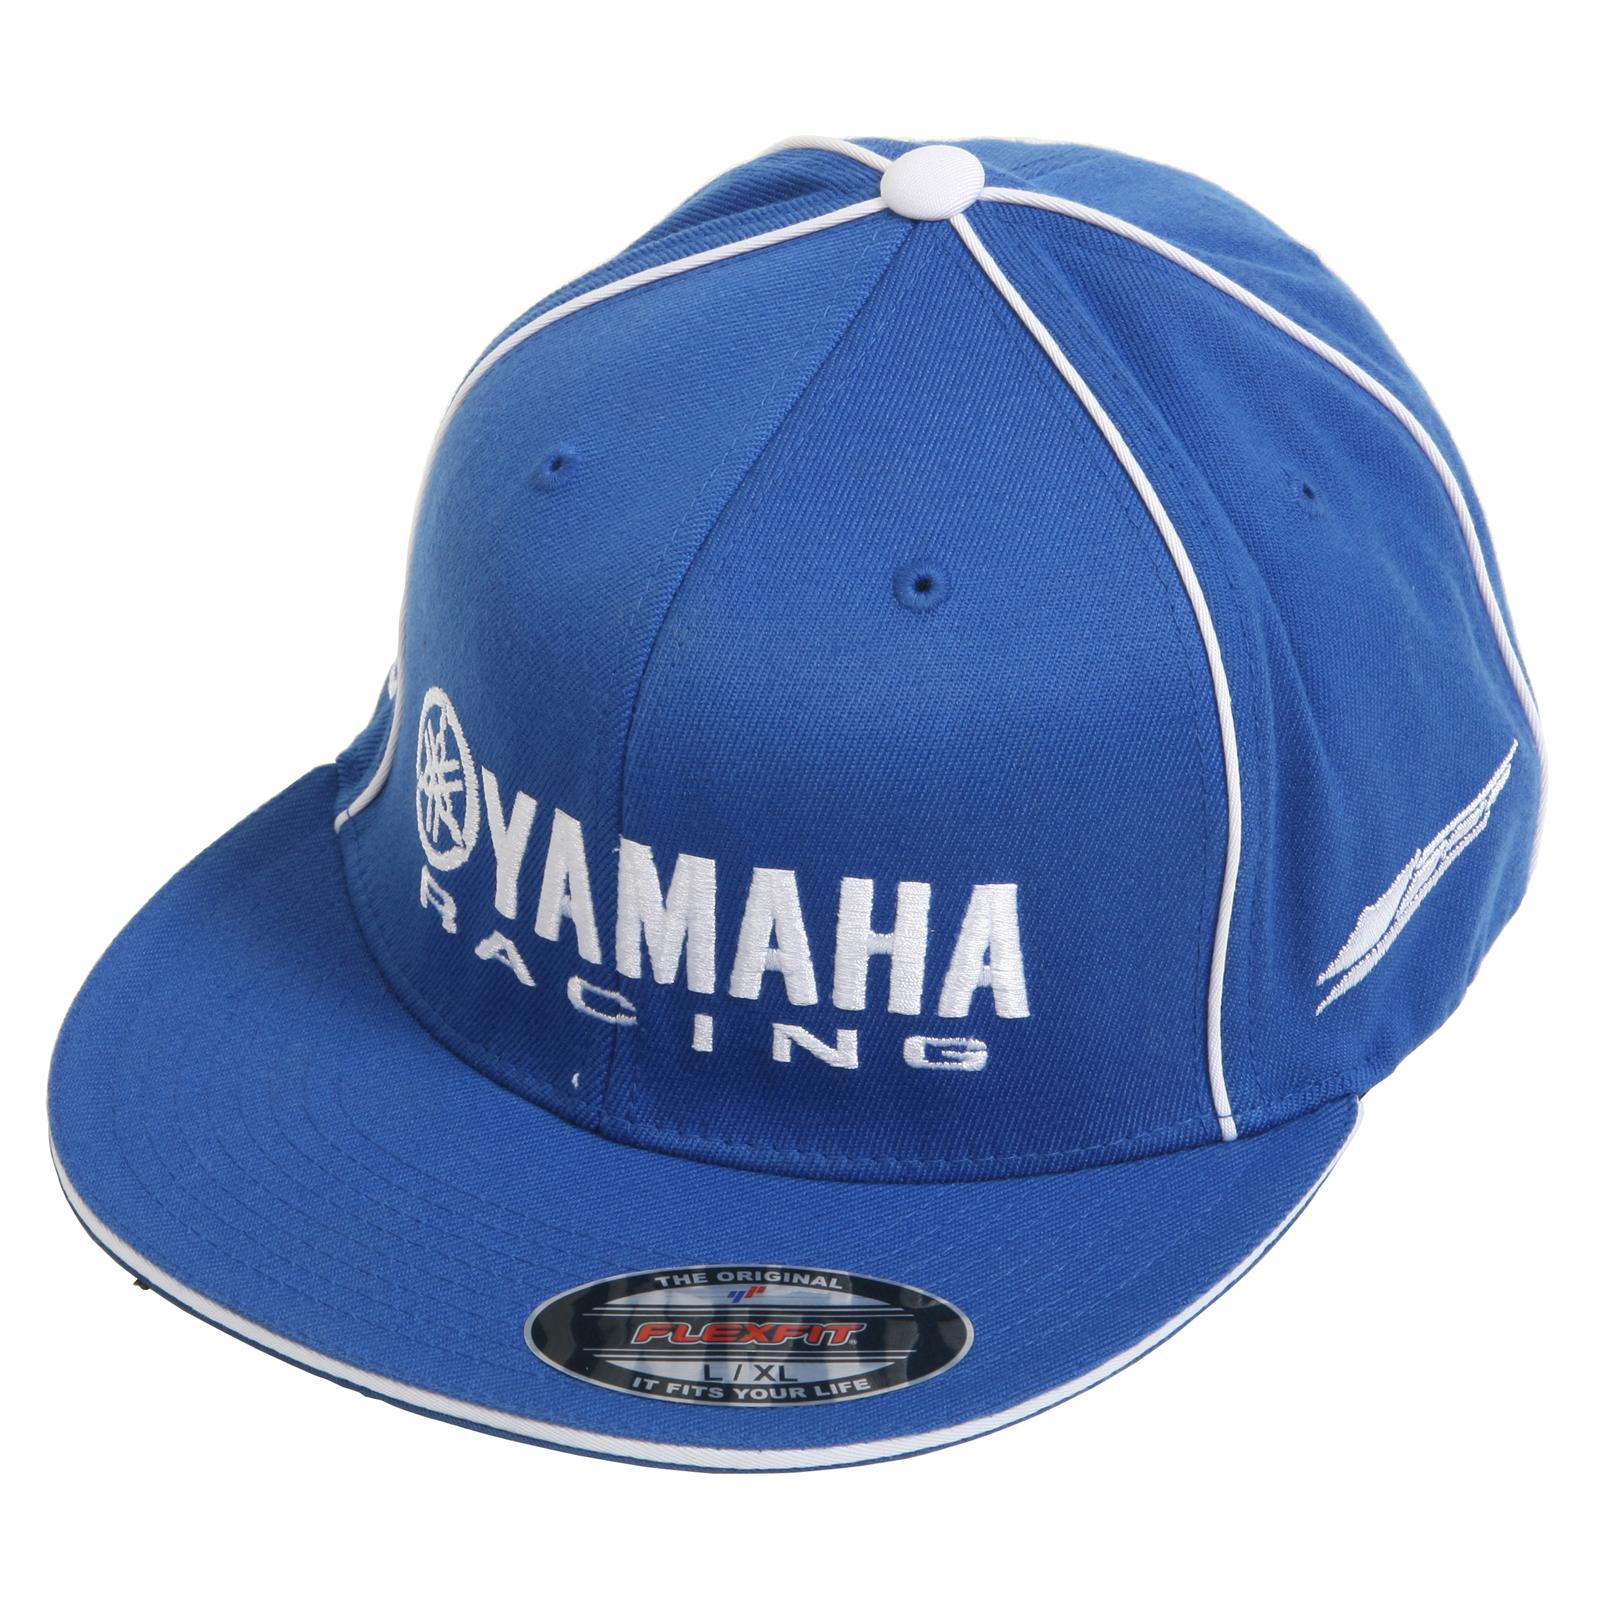 38986c758469d Factory Effex Yamaha Racing Flexfit Hats 12-88072 - Free Shipping on Orders  Over  99 at Summit Racing